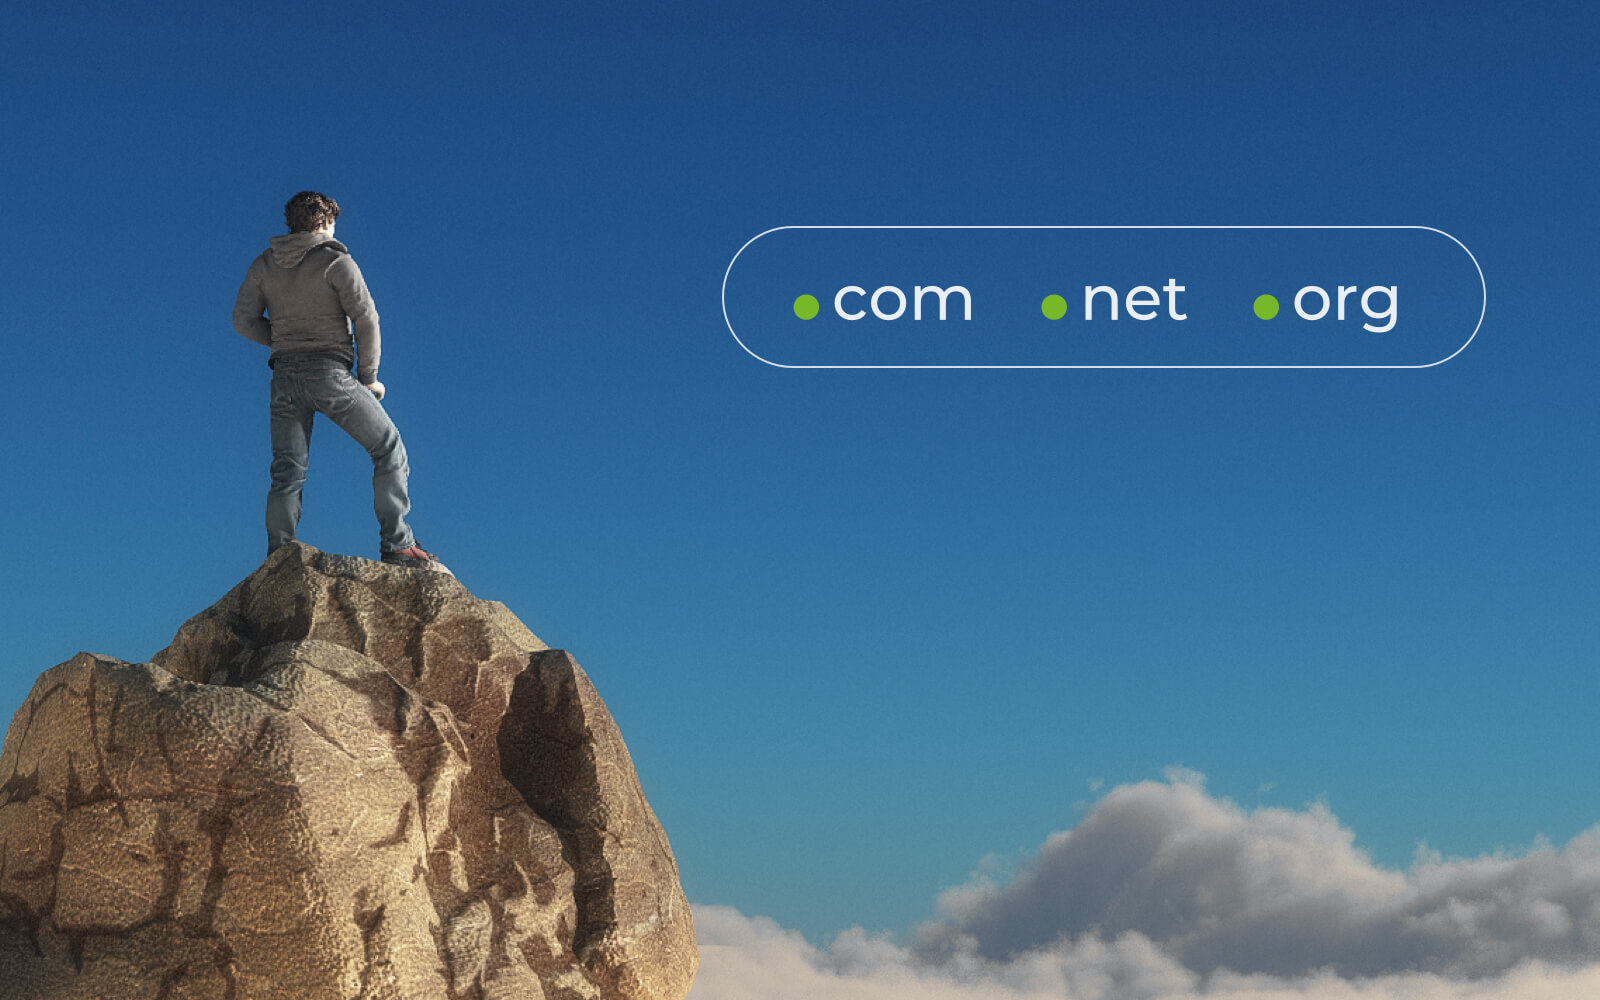 Examples of top level domains